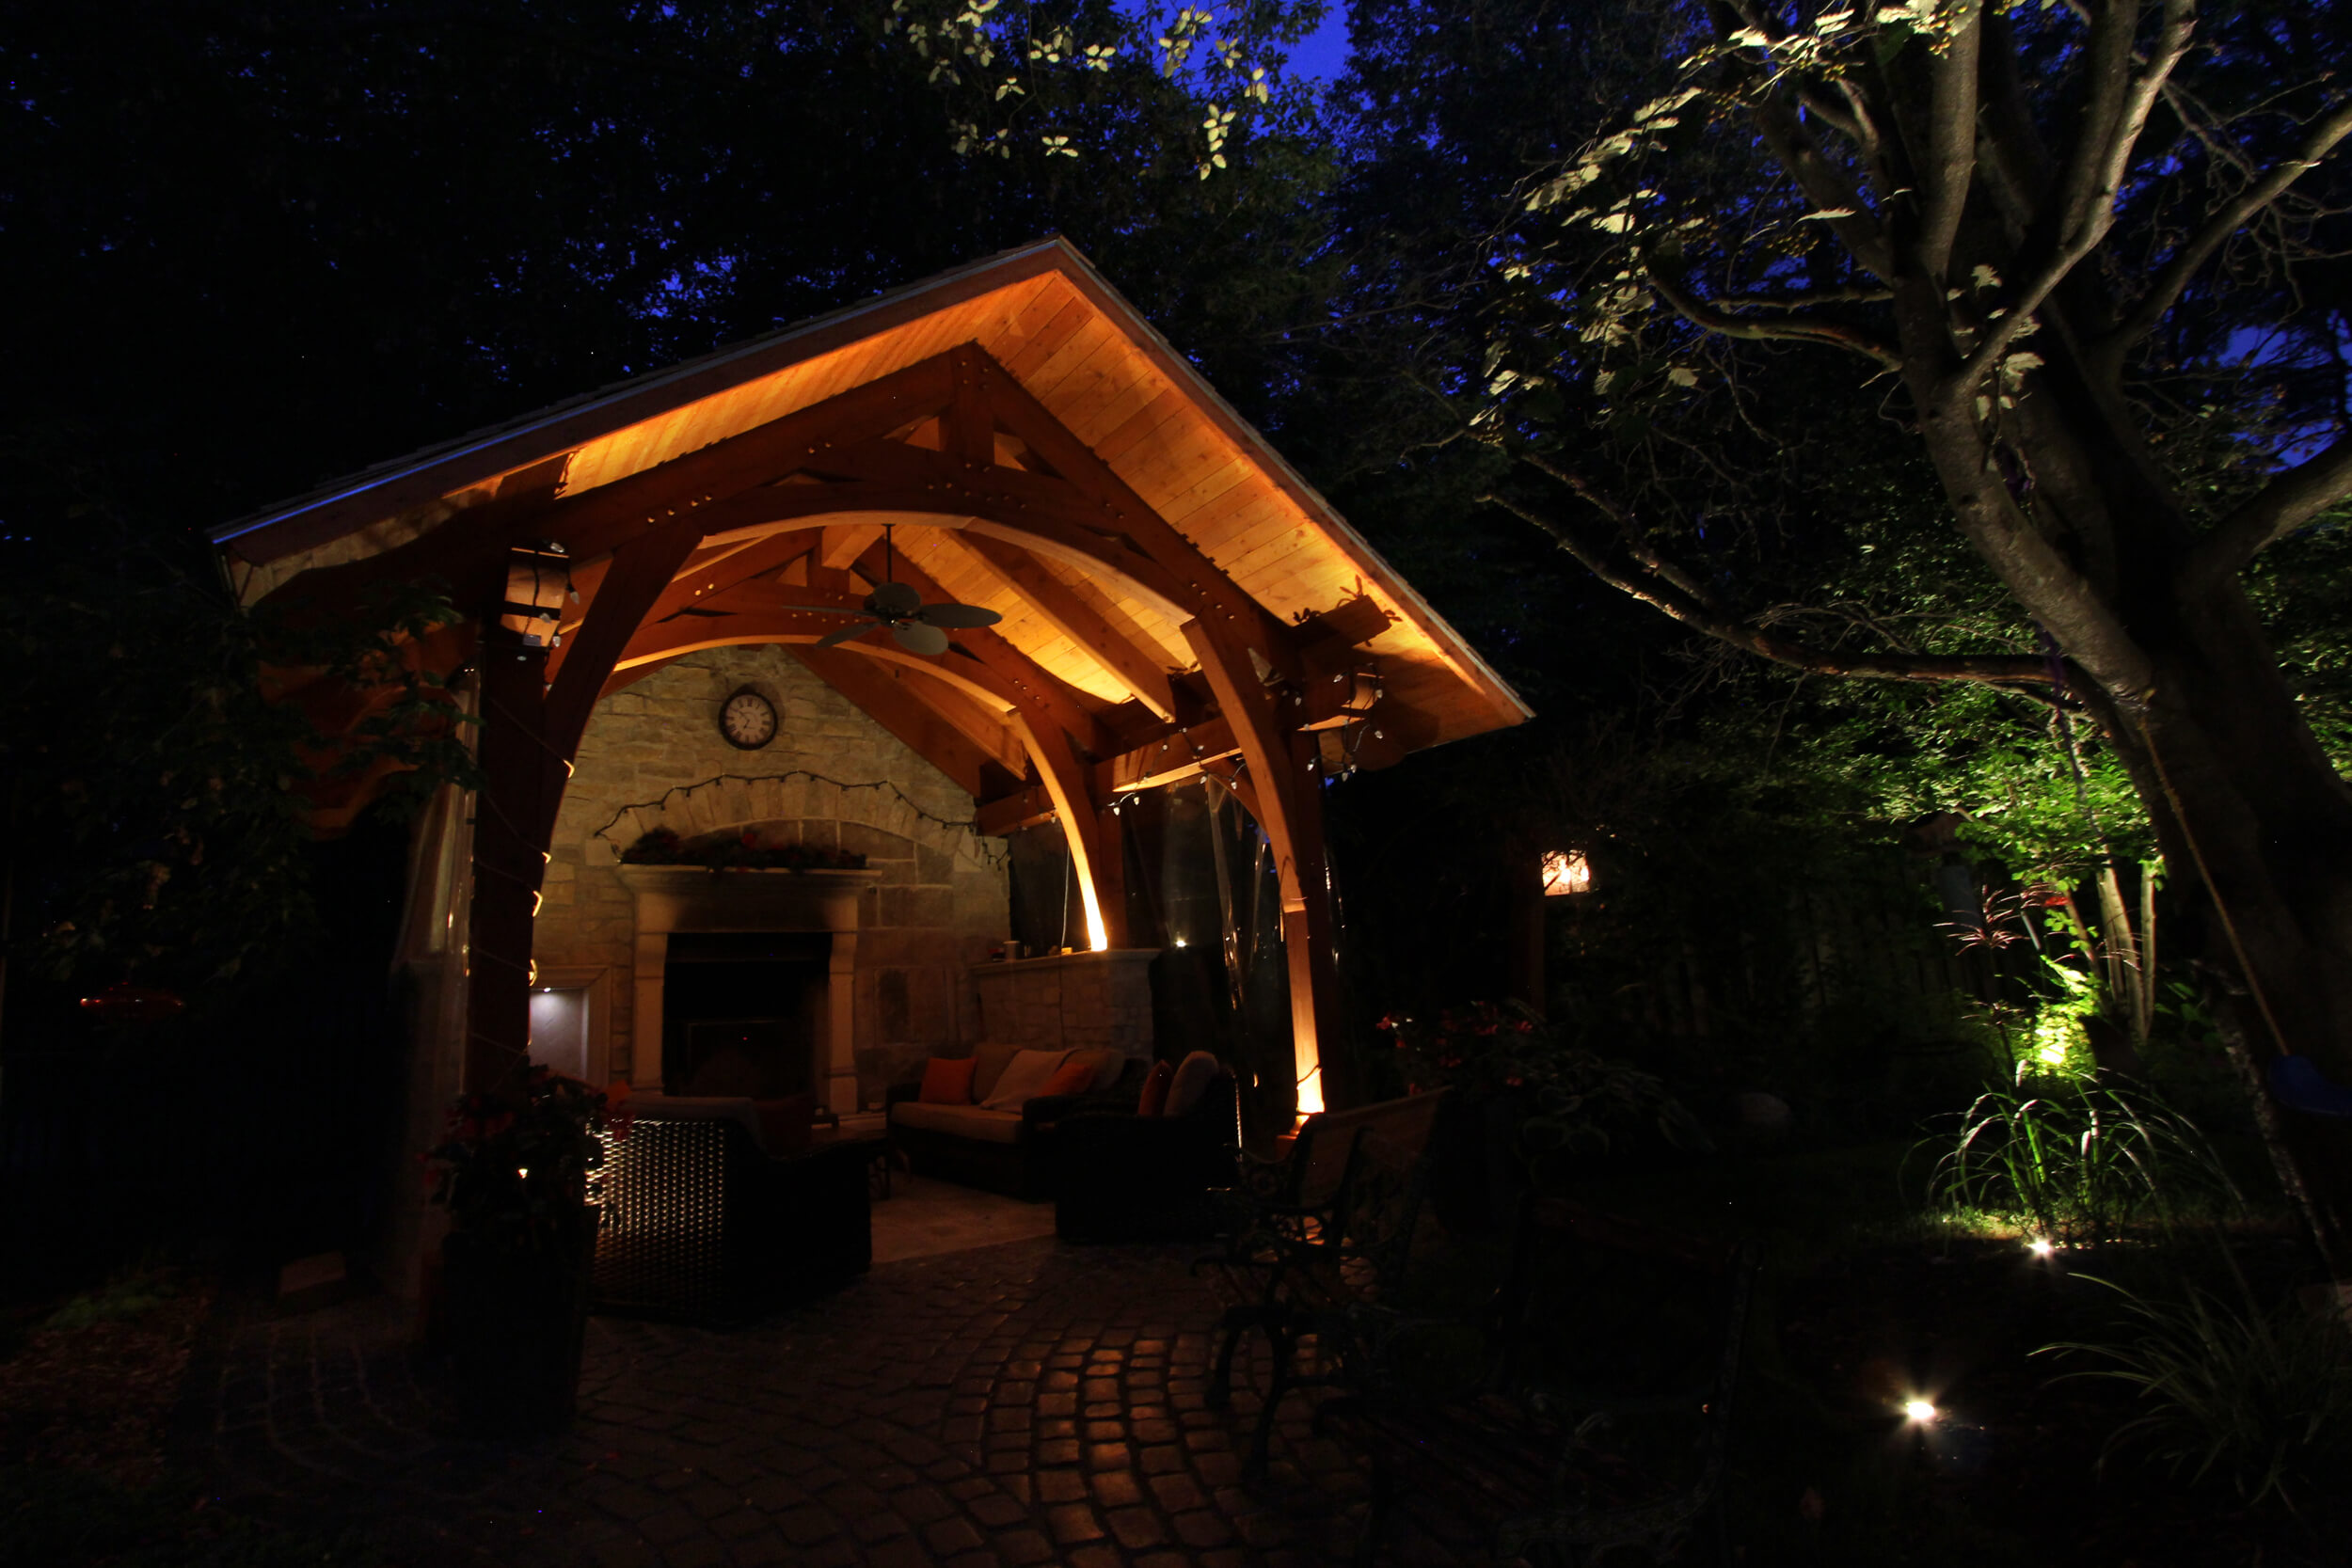 Outdoor fireplace timber frame led lighting in Guelph Ontario